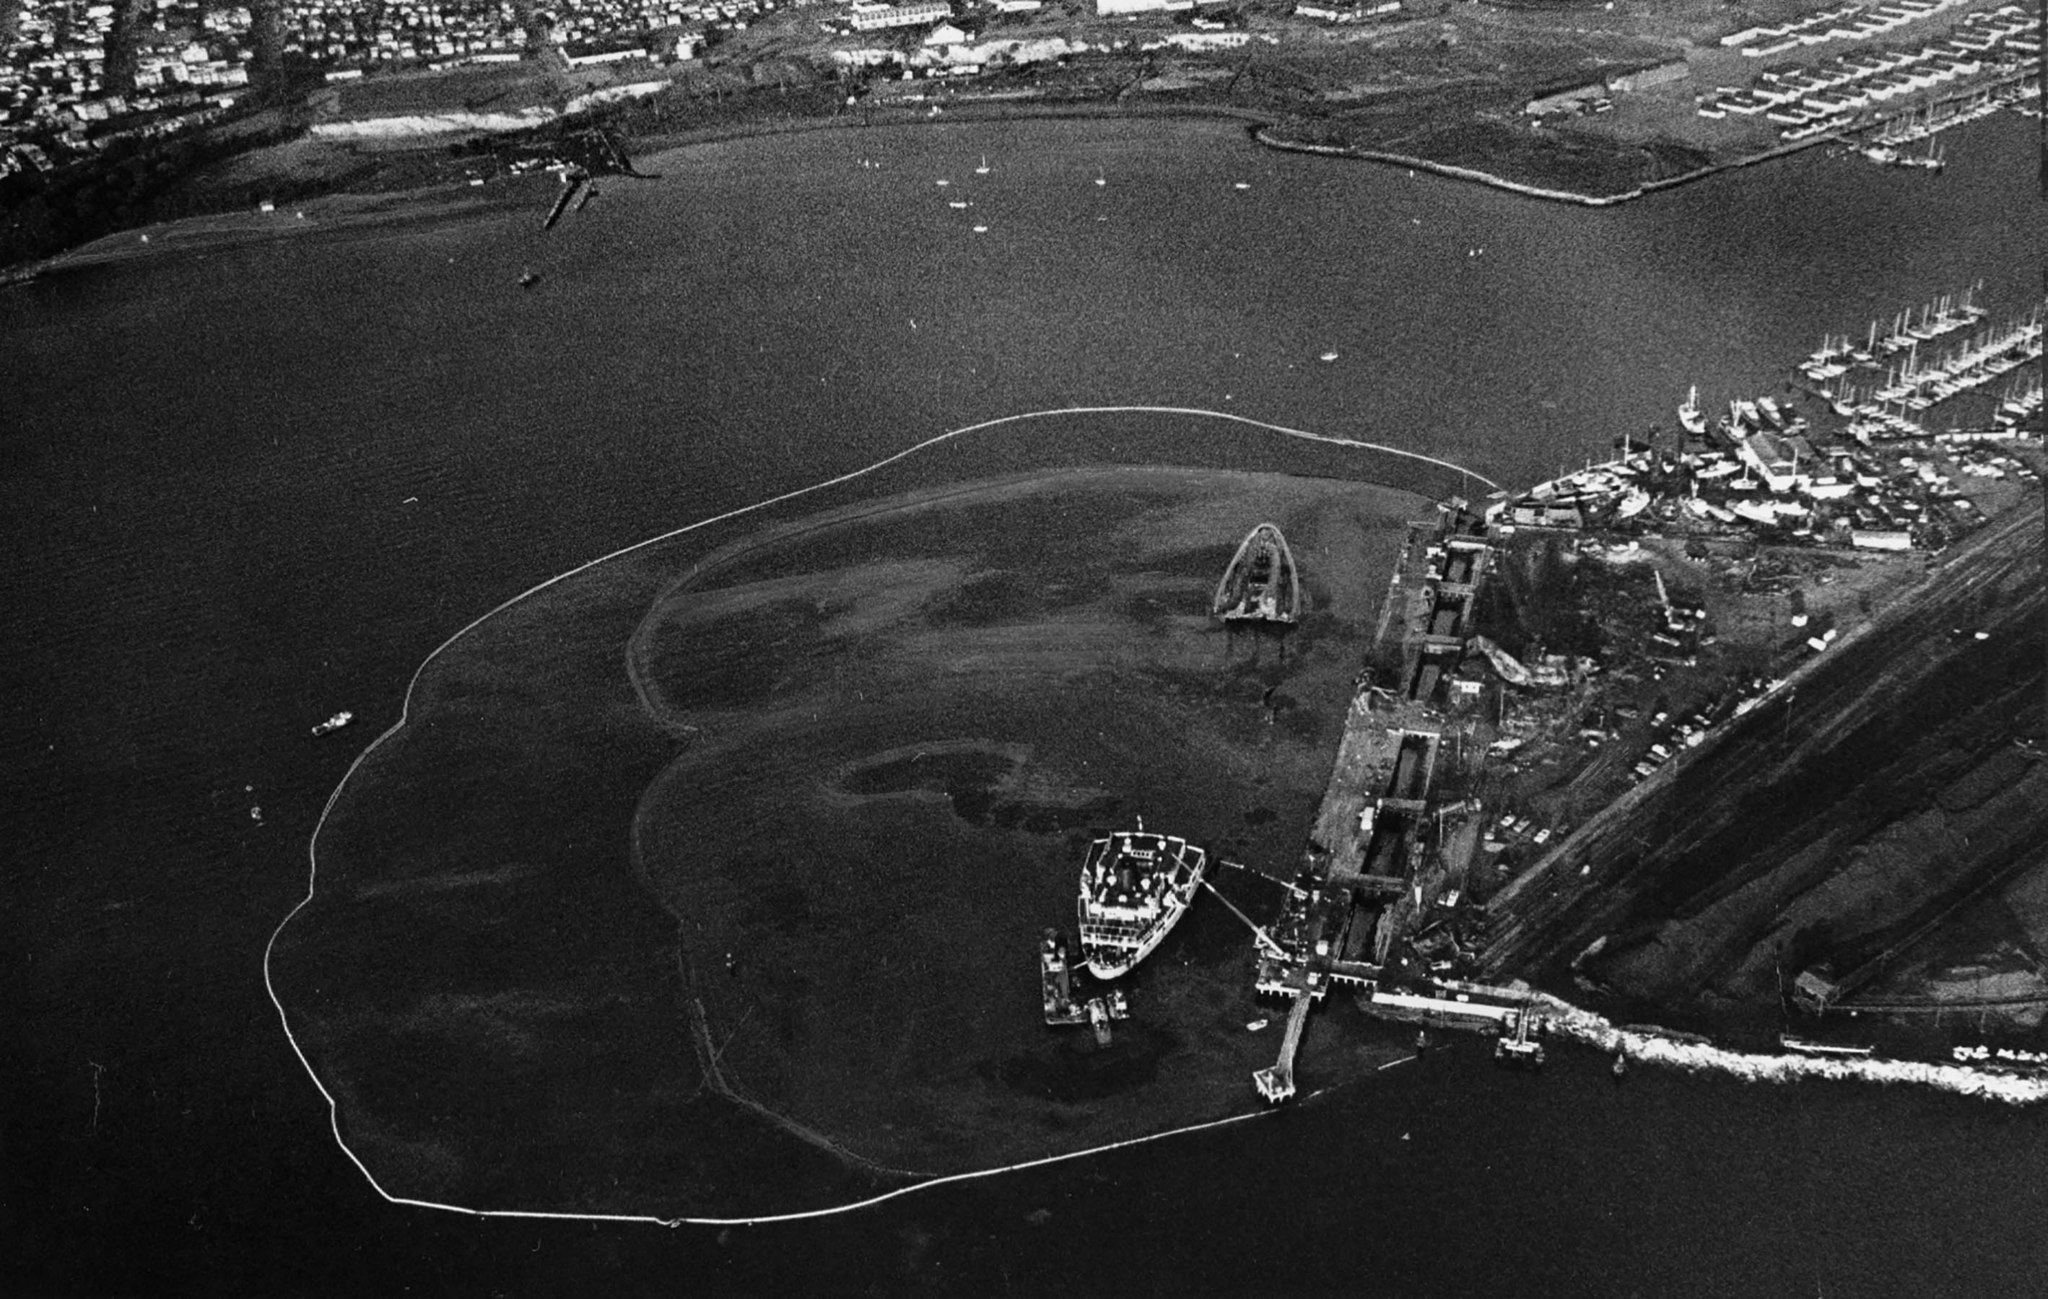 Dec. 28, 1976: Aerial view of the Sansinena wreckage with oil spill and containment equipment deploy